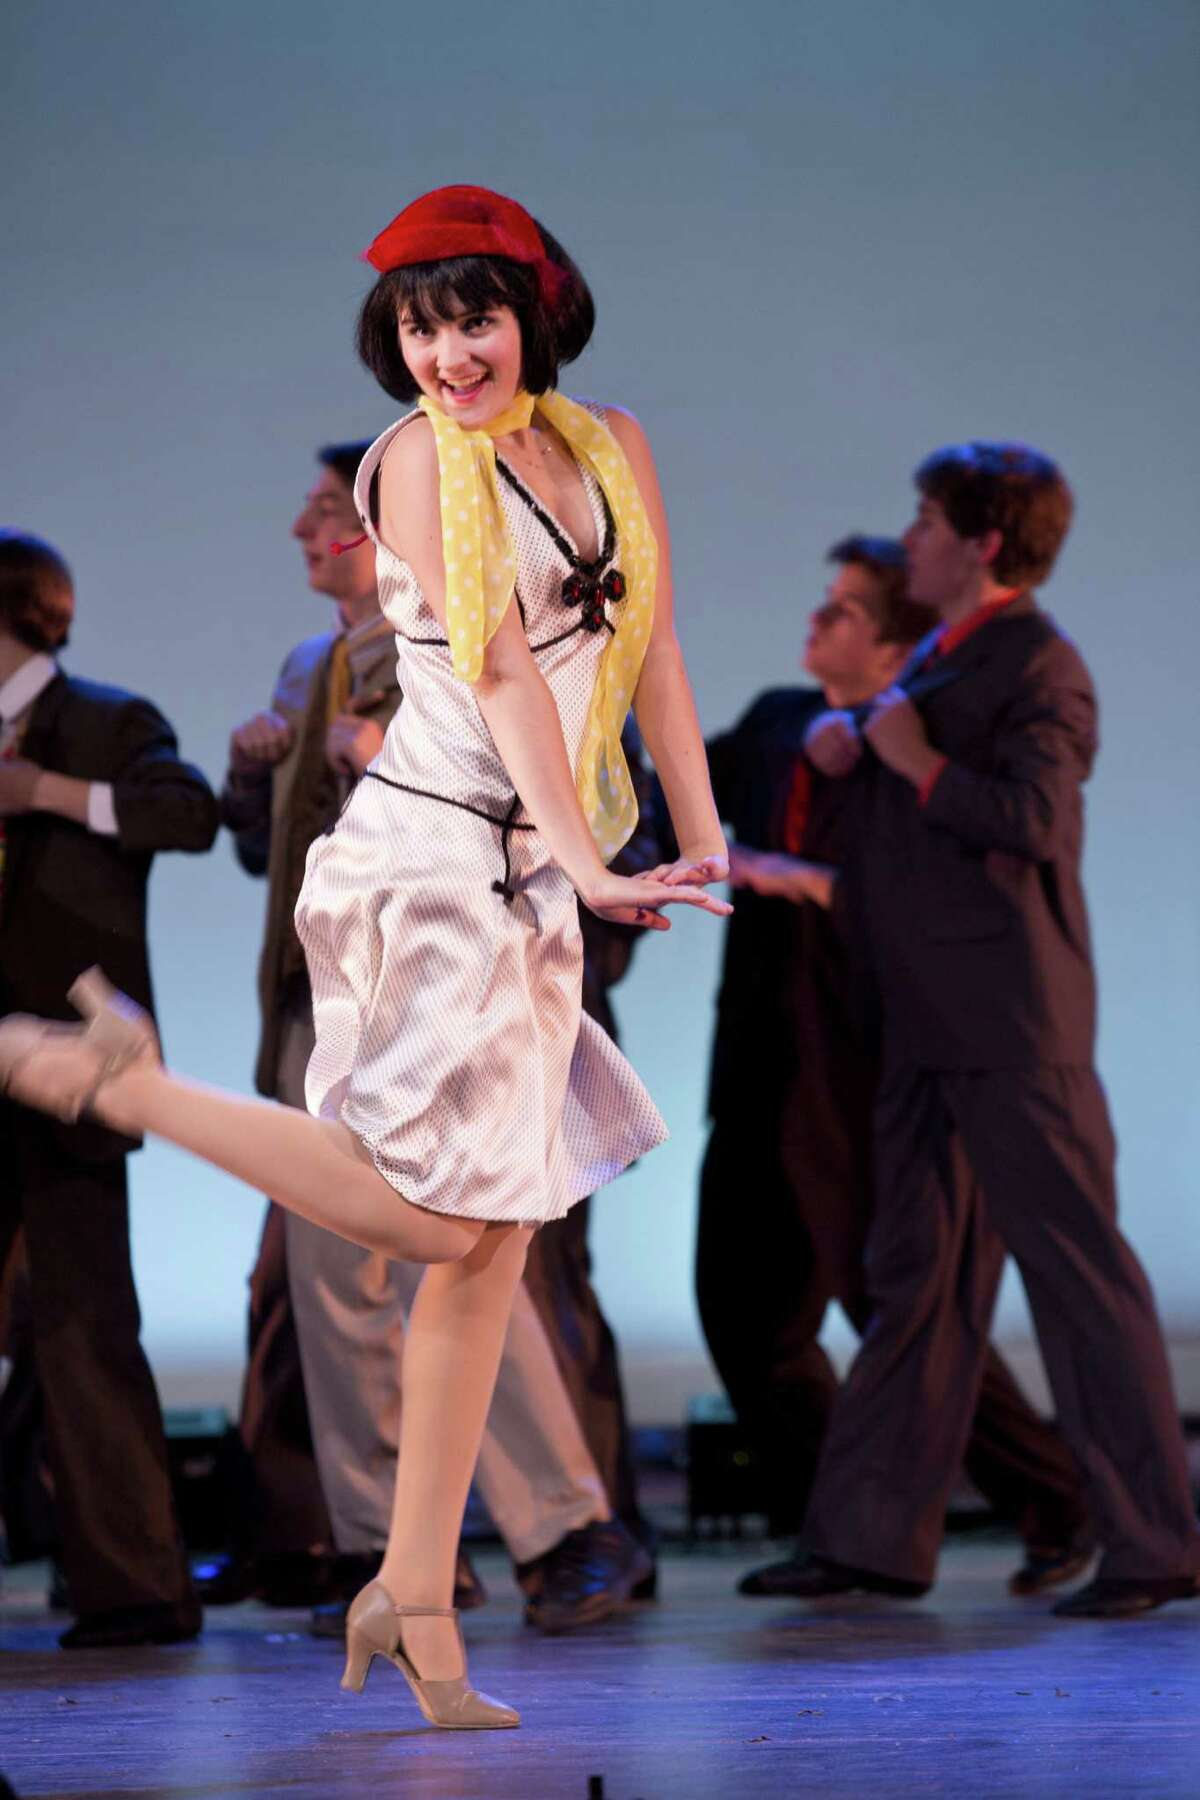 """Amanda Horowitz is one of the two actresses playing Millie in Staples High School's production of the musical """"Thoroughly Modern Millie."""" Performances are planned Nov. 15, 16, 22 and 23 at 7:30 p.m. A matinee Nov. 23 is at 2 p.m."""